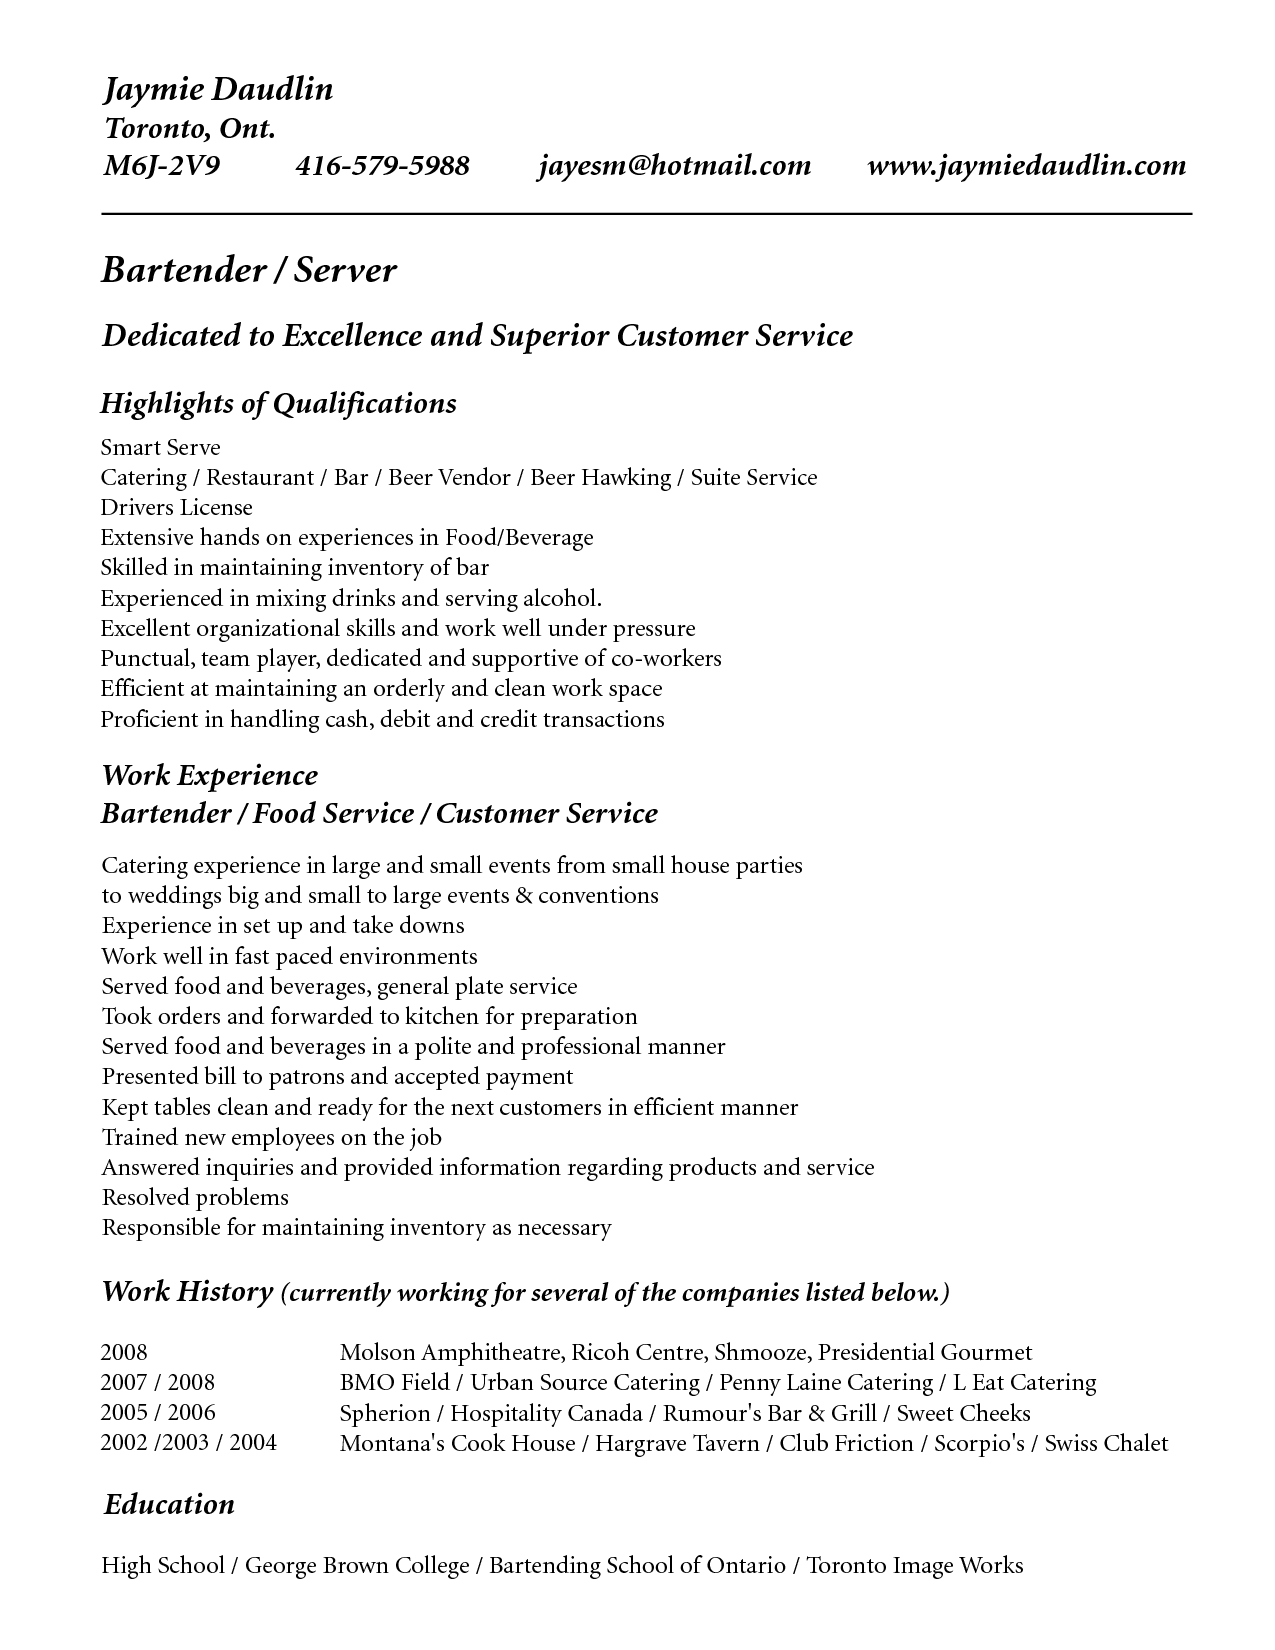 Superb Server Bartender Resume Intended For Bartender Description